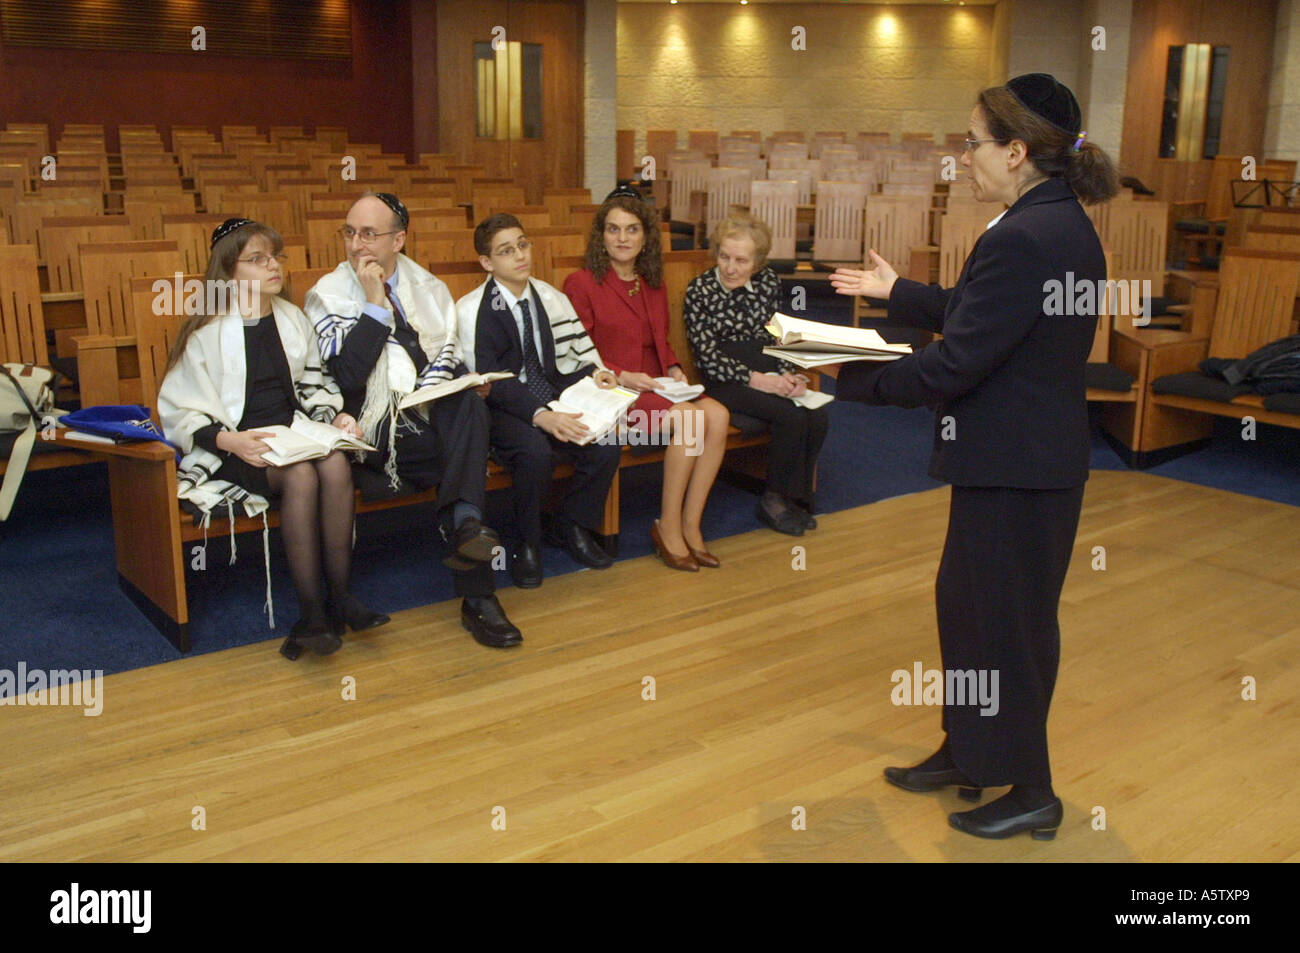 A woman rabbi rehearsing for a Bat Mitzva - Stock Image